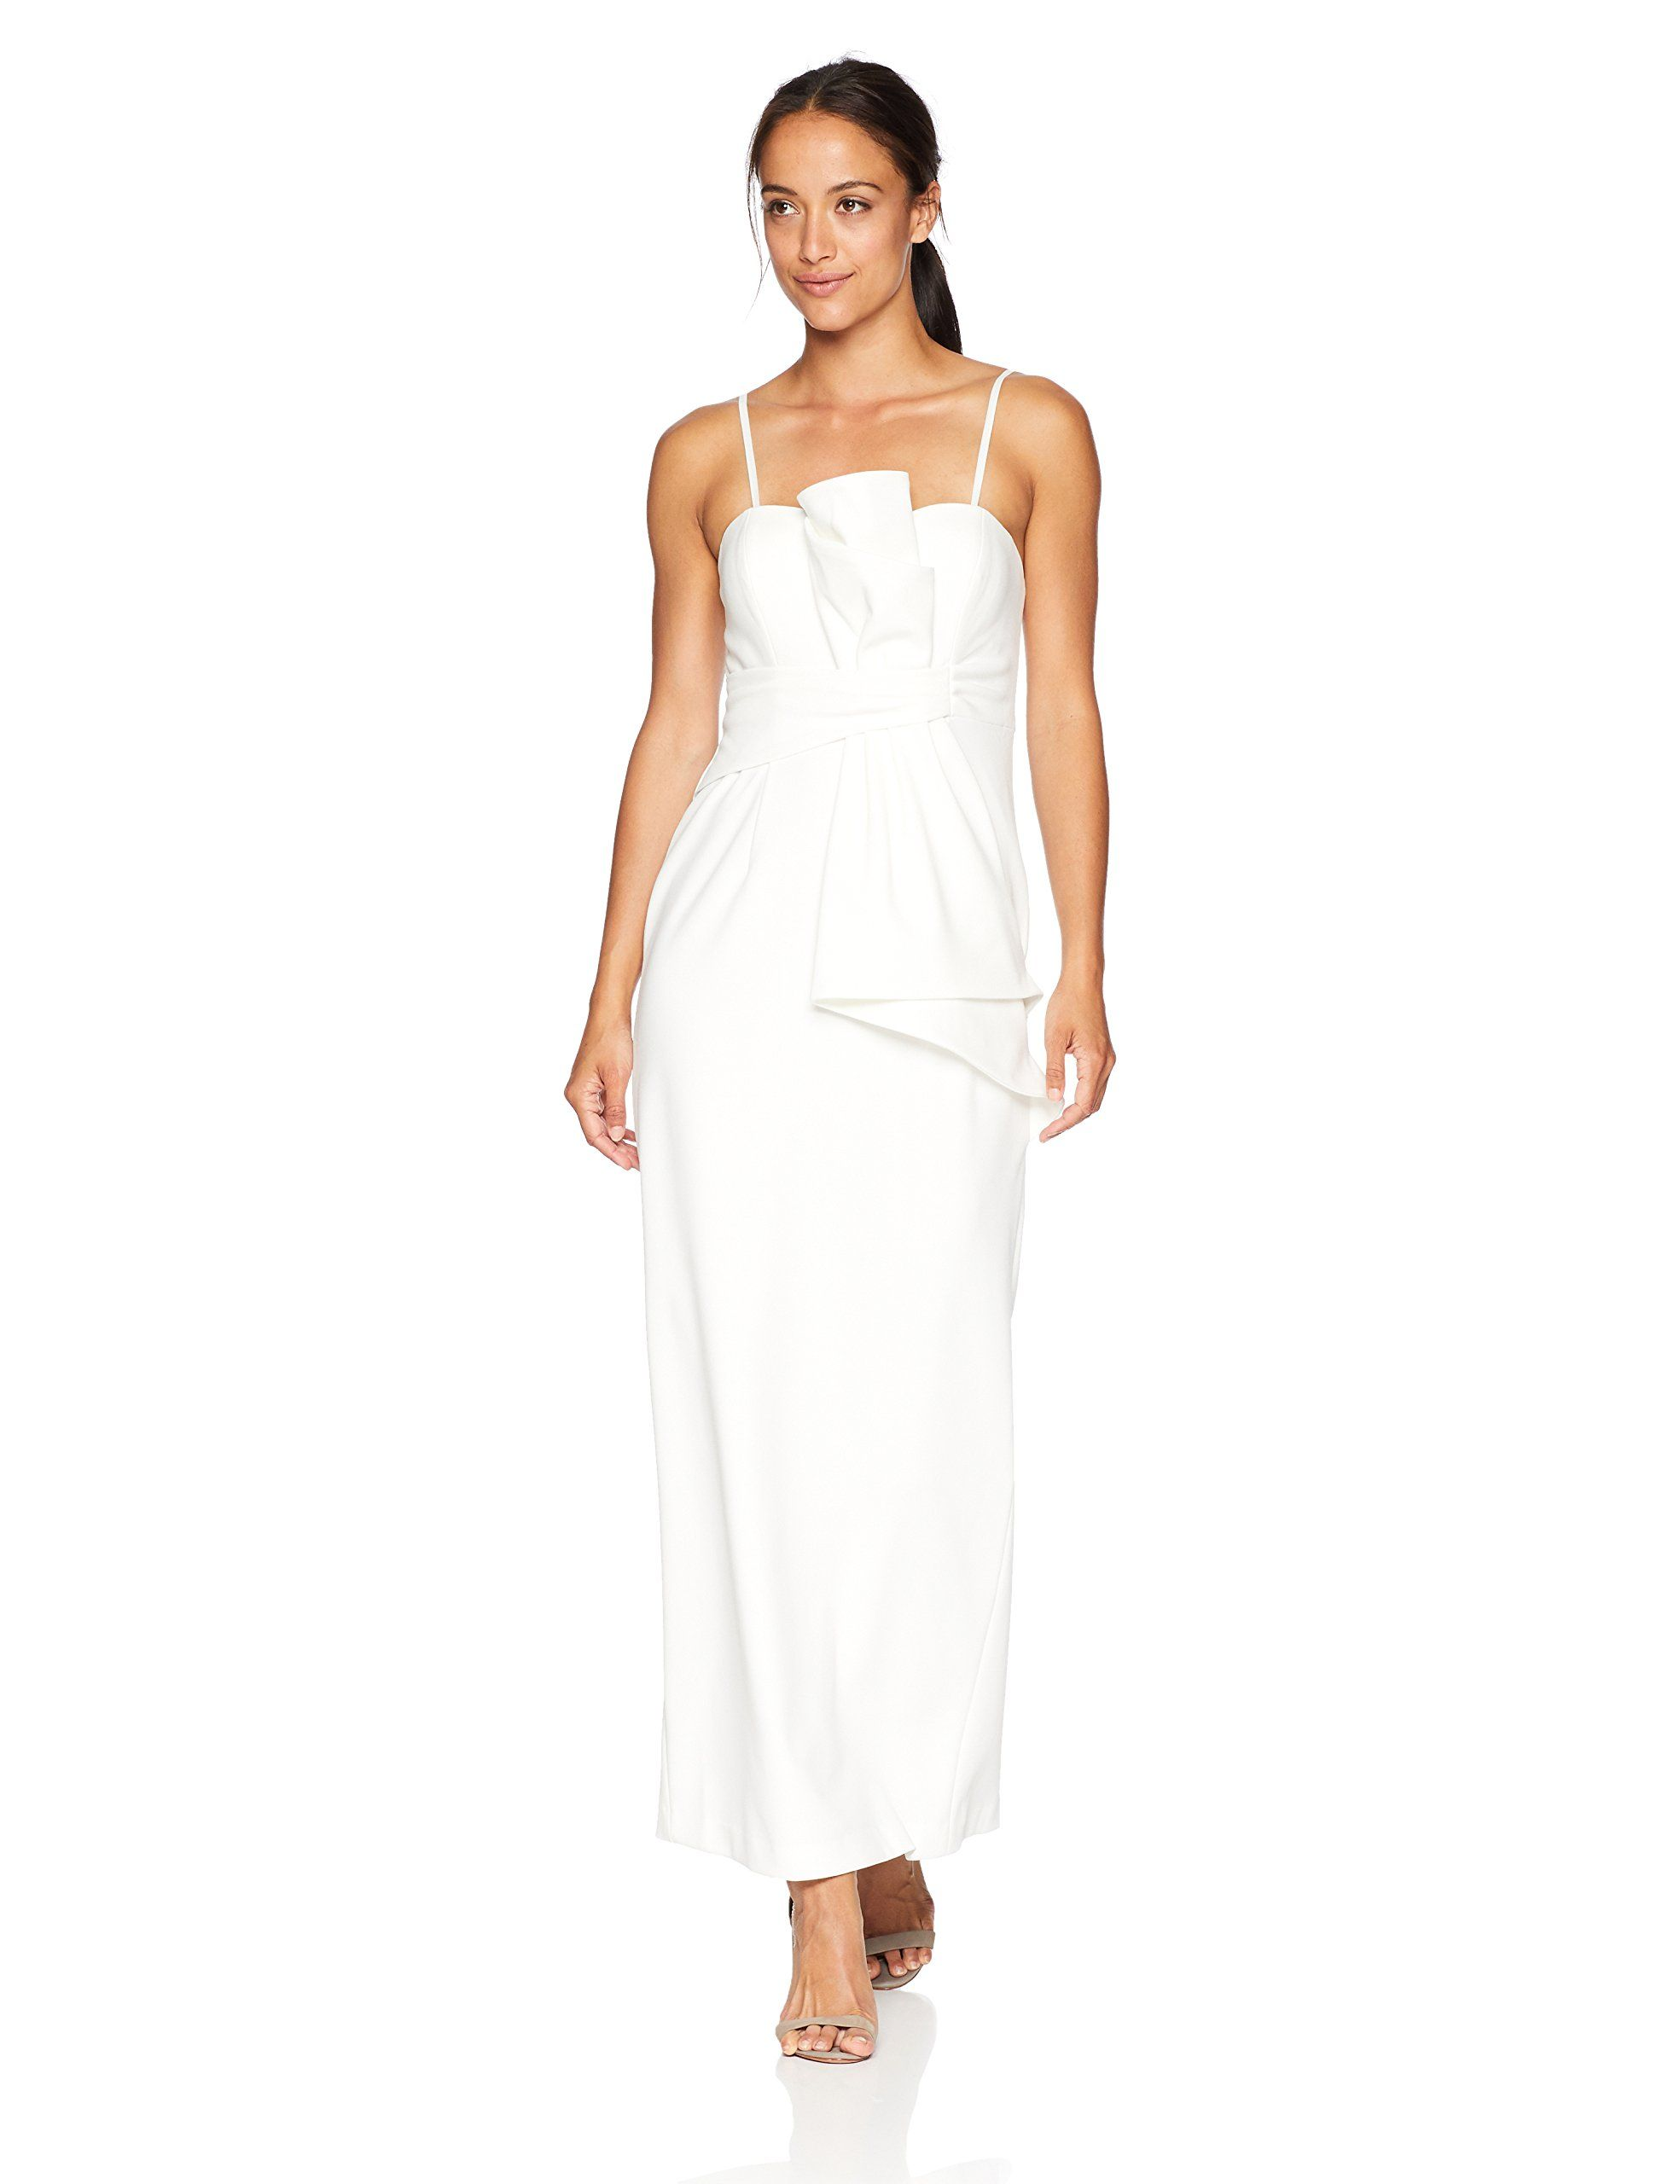 04b5daf070a Adrianna Papell Womens Petite Strapless Bow Detail Front Knit Crepe Column  Gown Ivory 6P   Check out this great product-affiliate link.  dresses